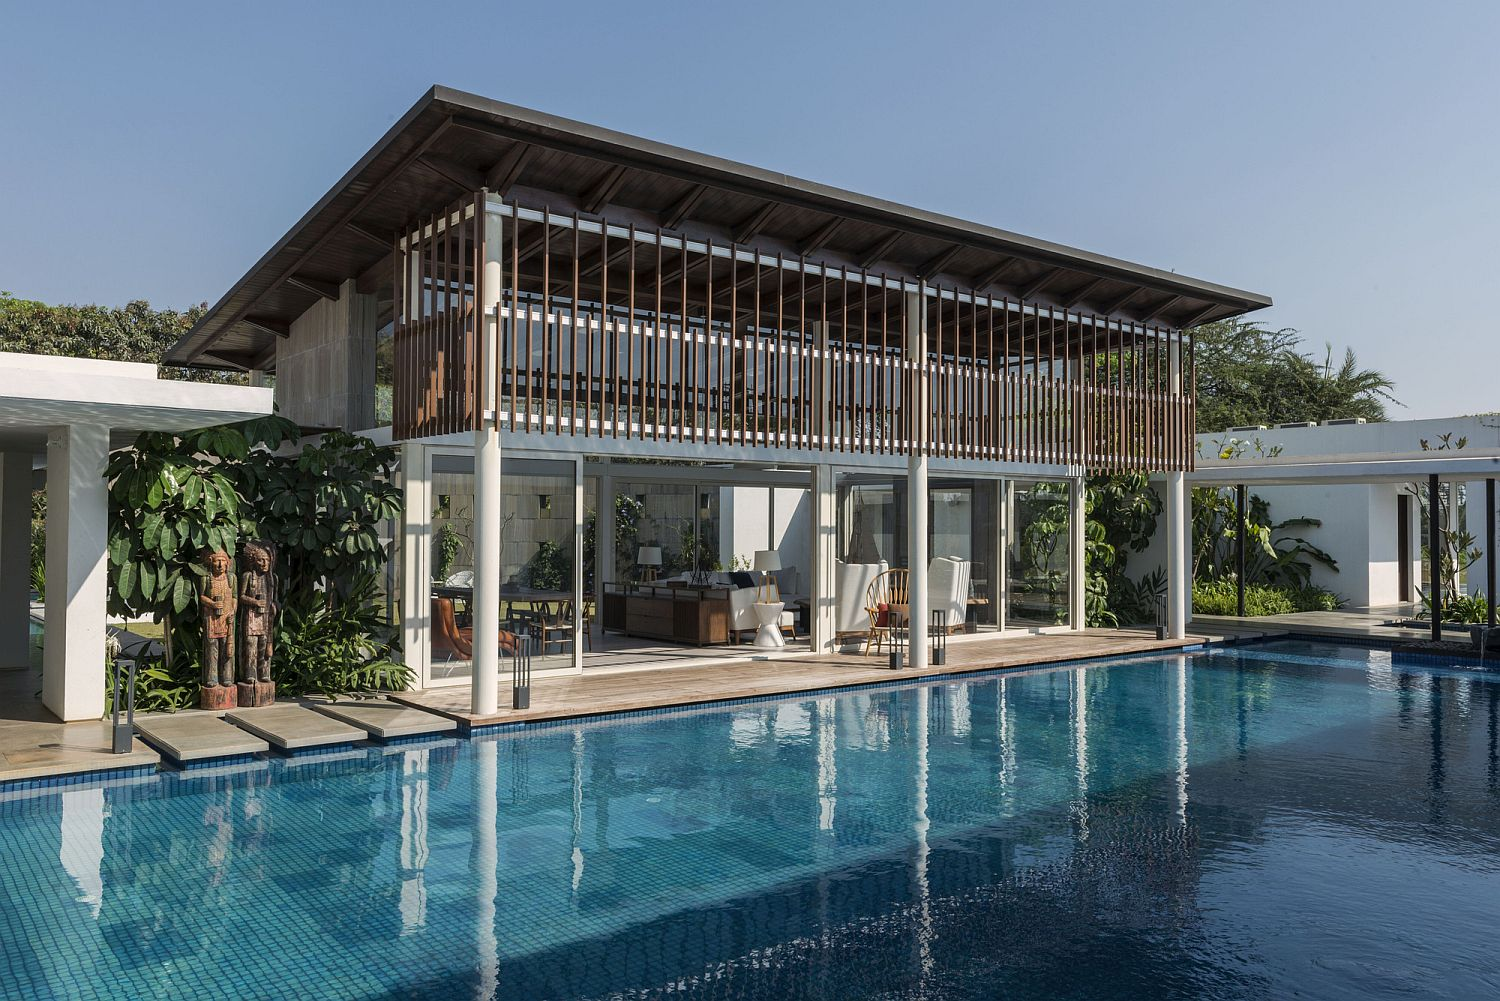 Private courtyard and pool area of the second home in Maharashtra